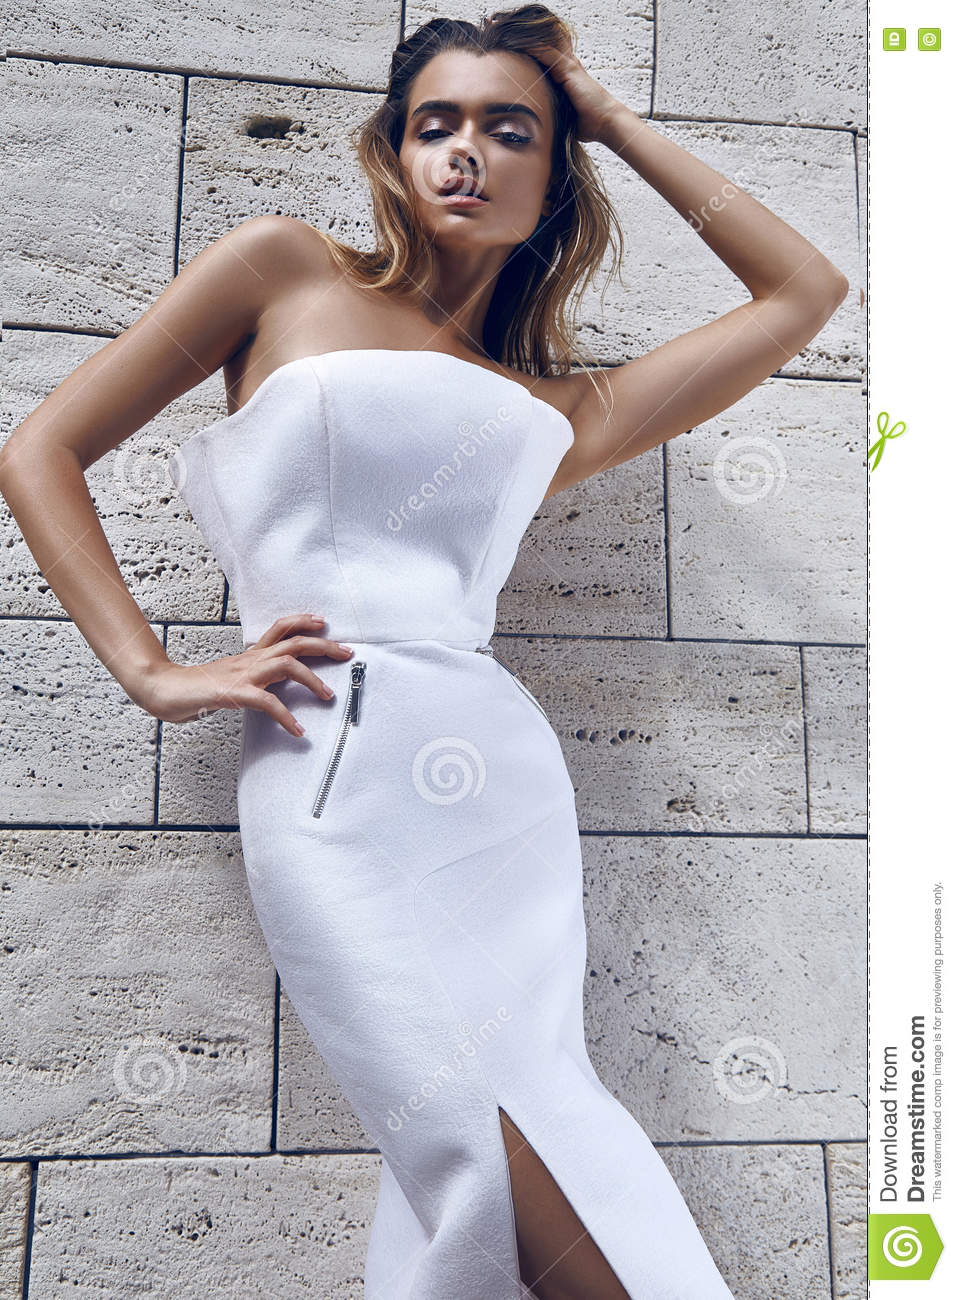 Beautiful Woman Blond Hair Model Fashion Style Dress Wear White Color Sun Shine Shadow Wall Tanned Skin Summer Weather Vogue Glamour Lady Body Face